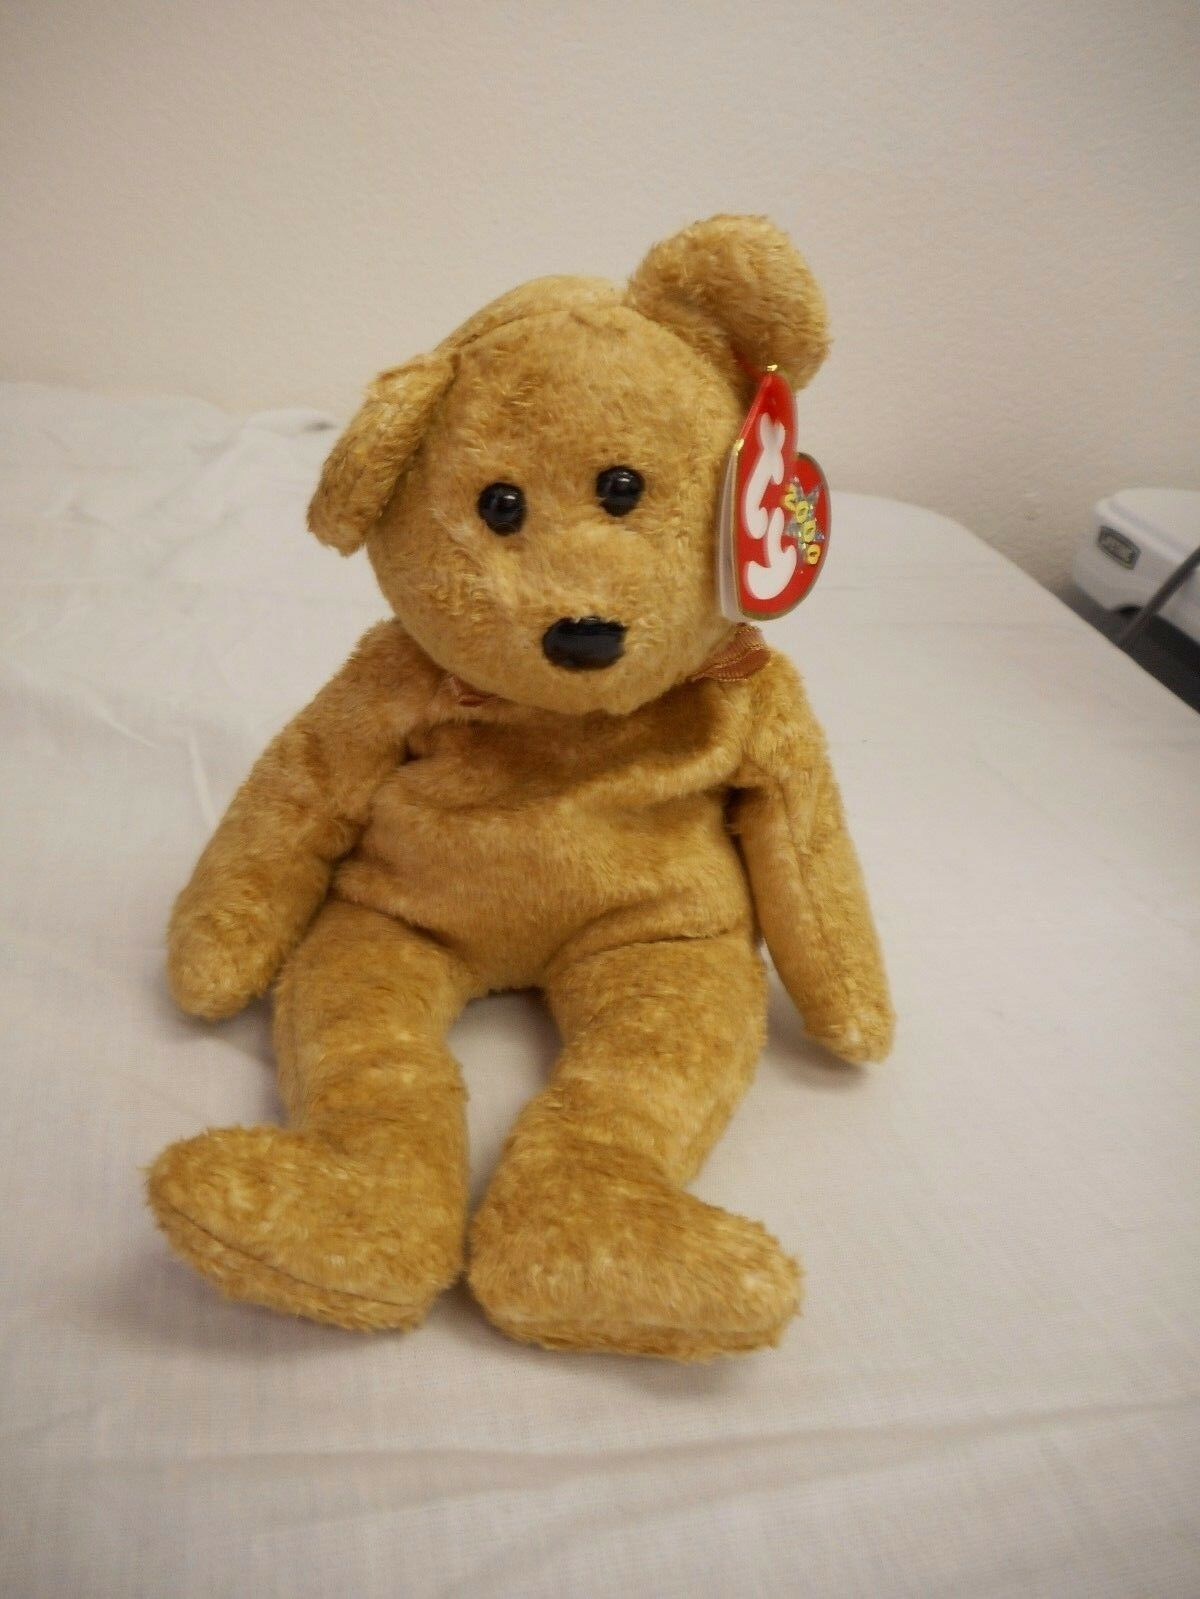 702b70b4cb8 Cashew Bear 2000 Beanie Baby Mint W Mint and 22 similar items. S l1600